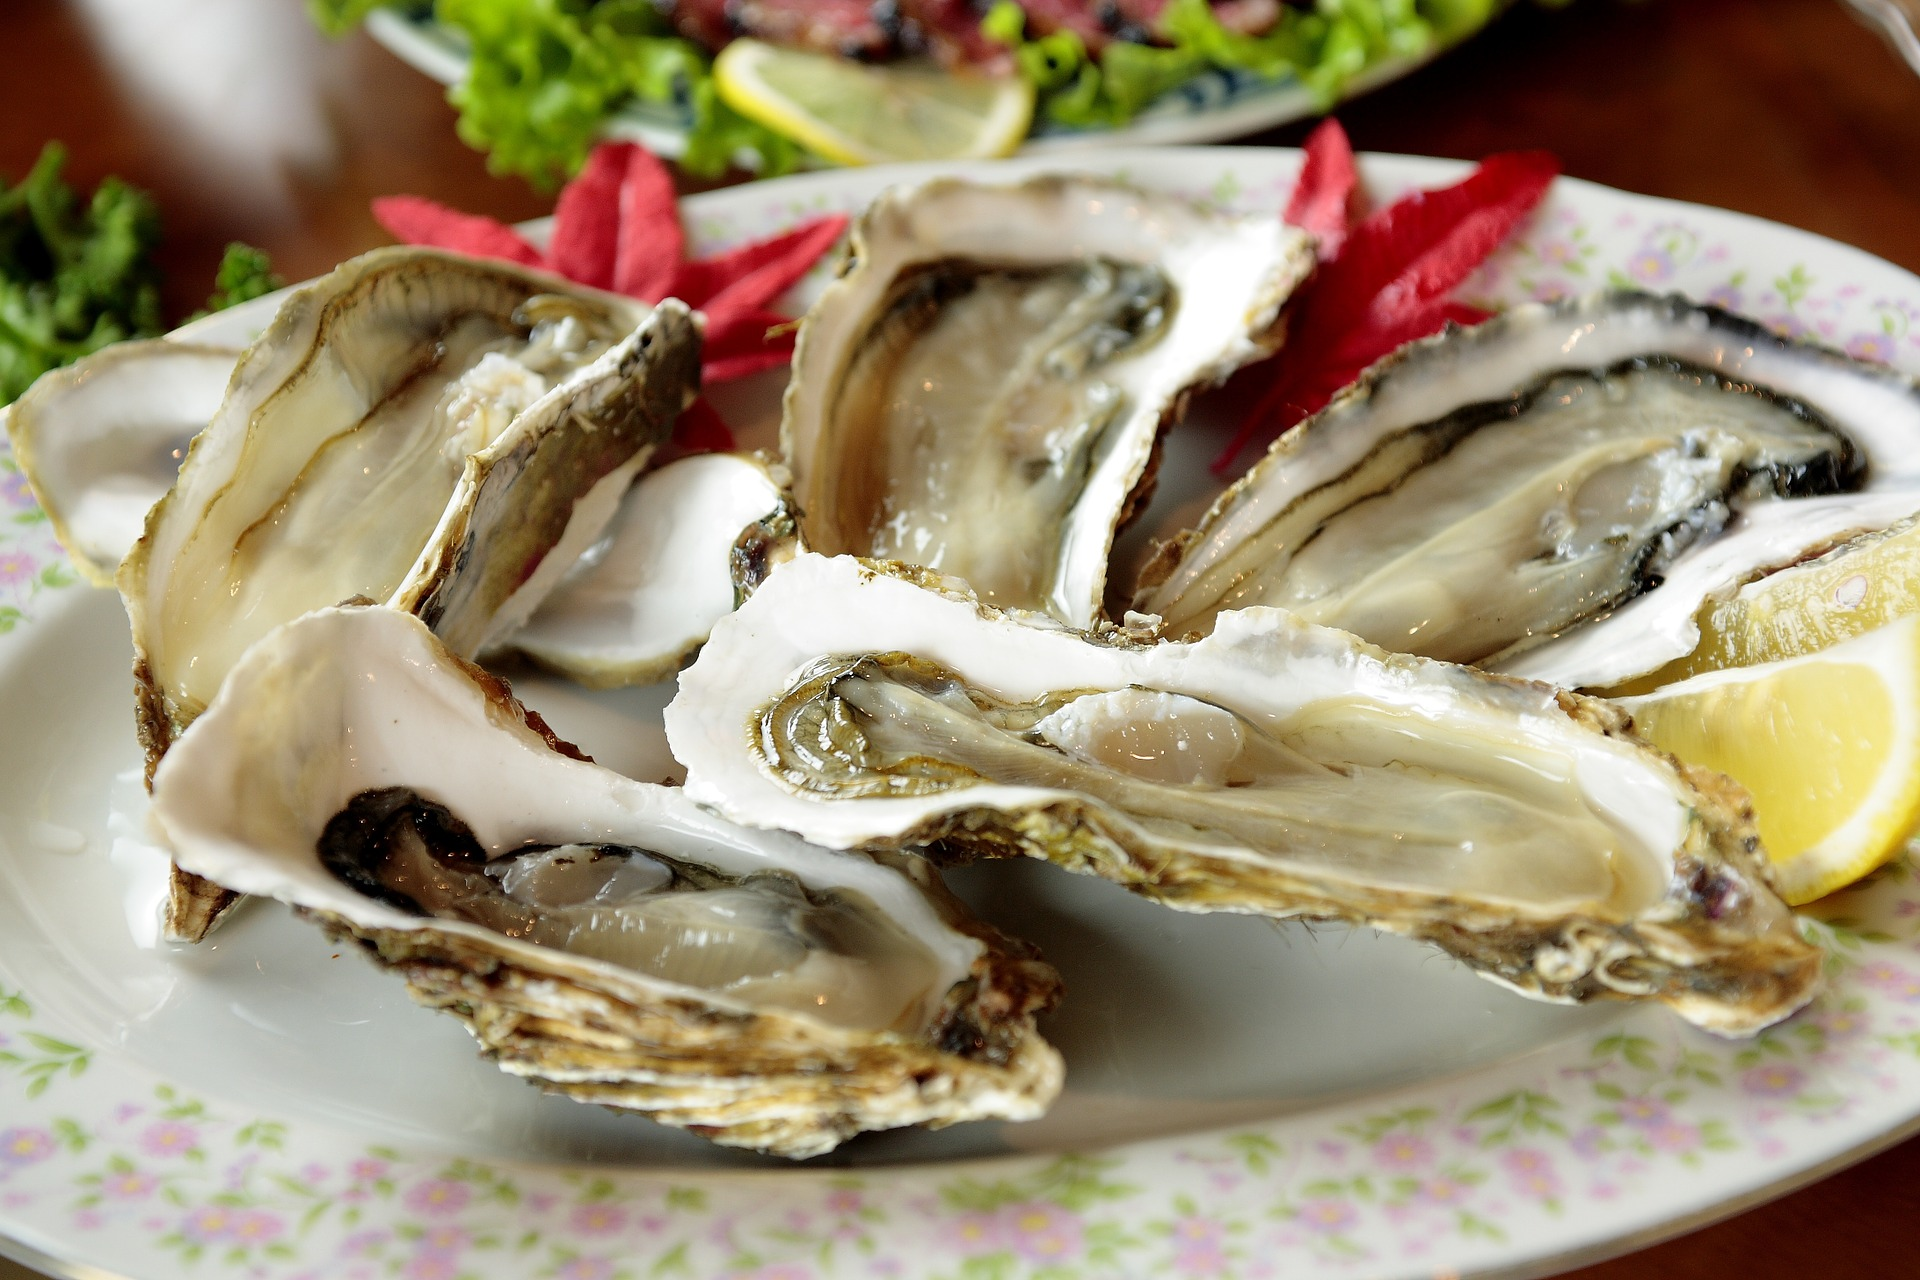 Rich in a healthy hair nutrient, zinc, oysters are one of the best superfoods for hair regrowth!